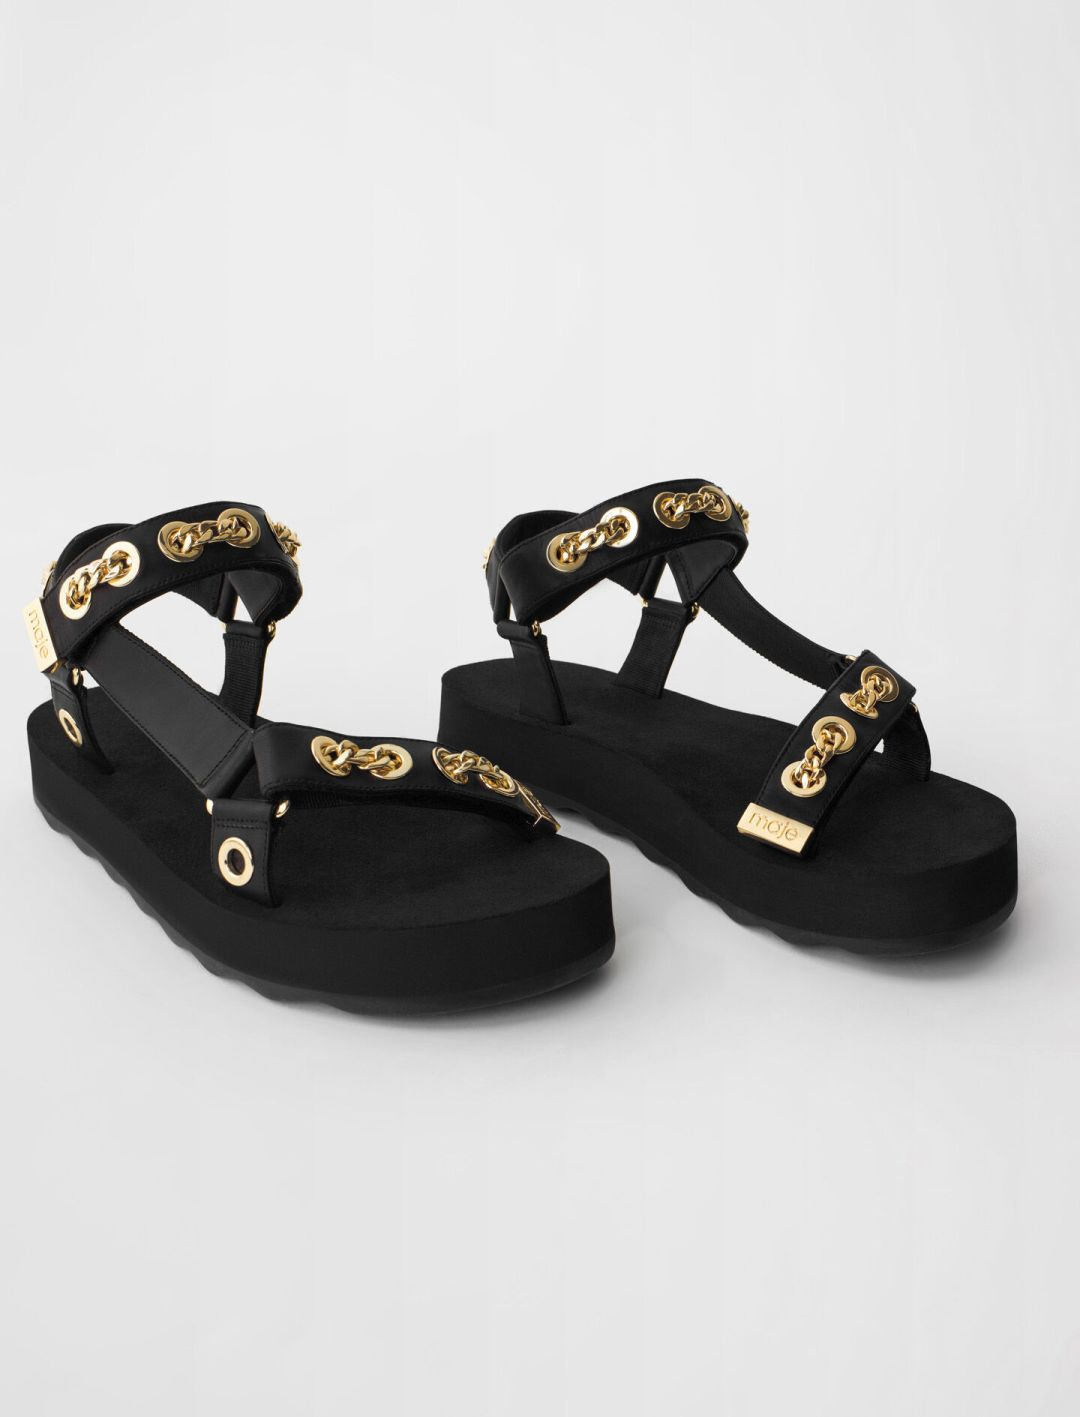 Maje Clothing Review, maje sandals